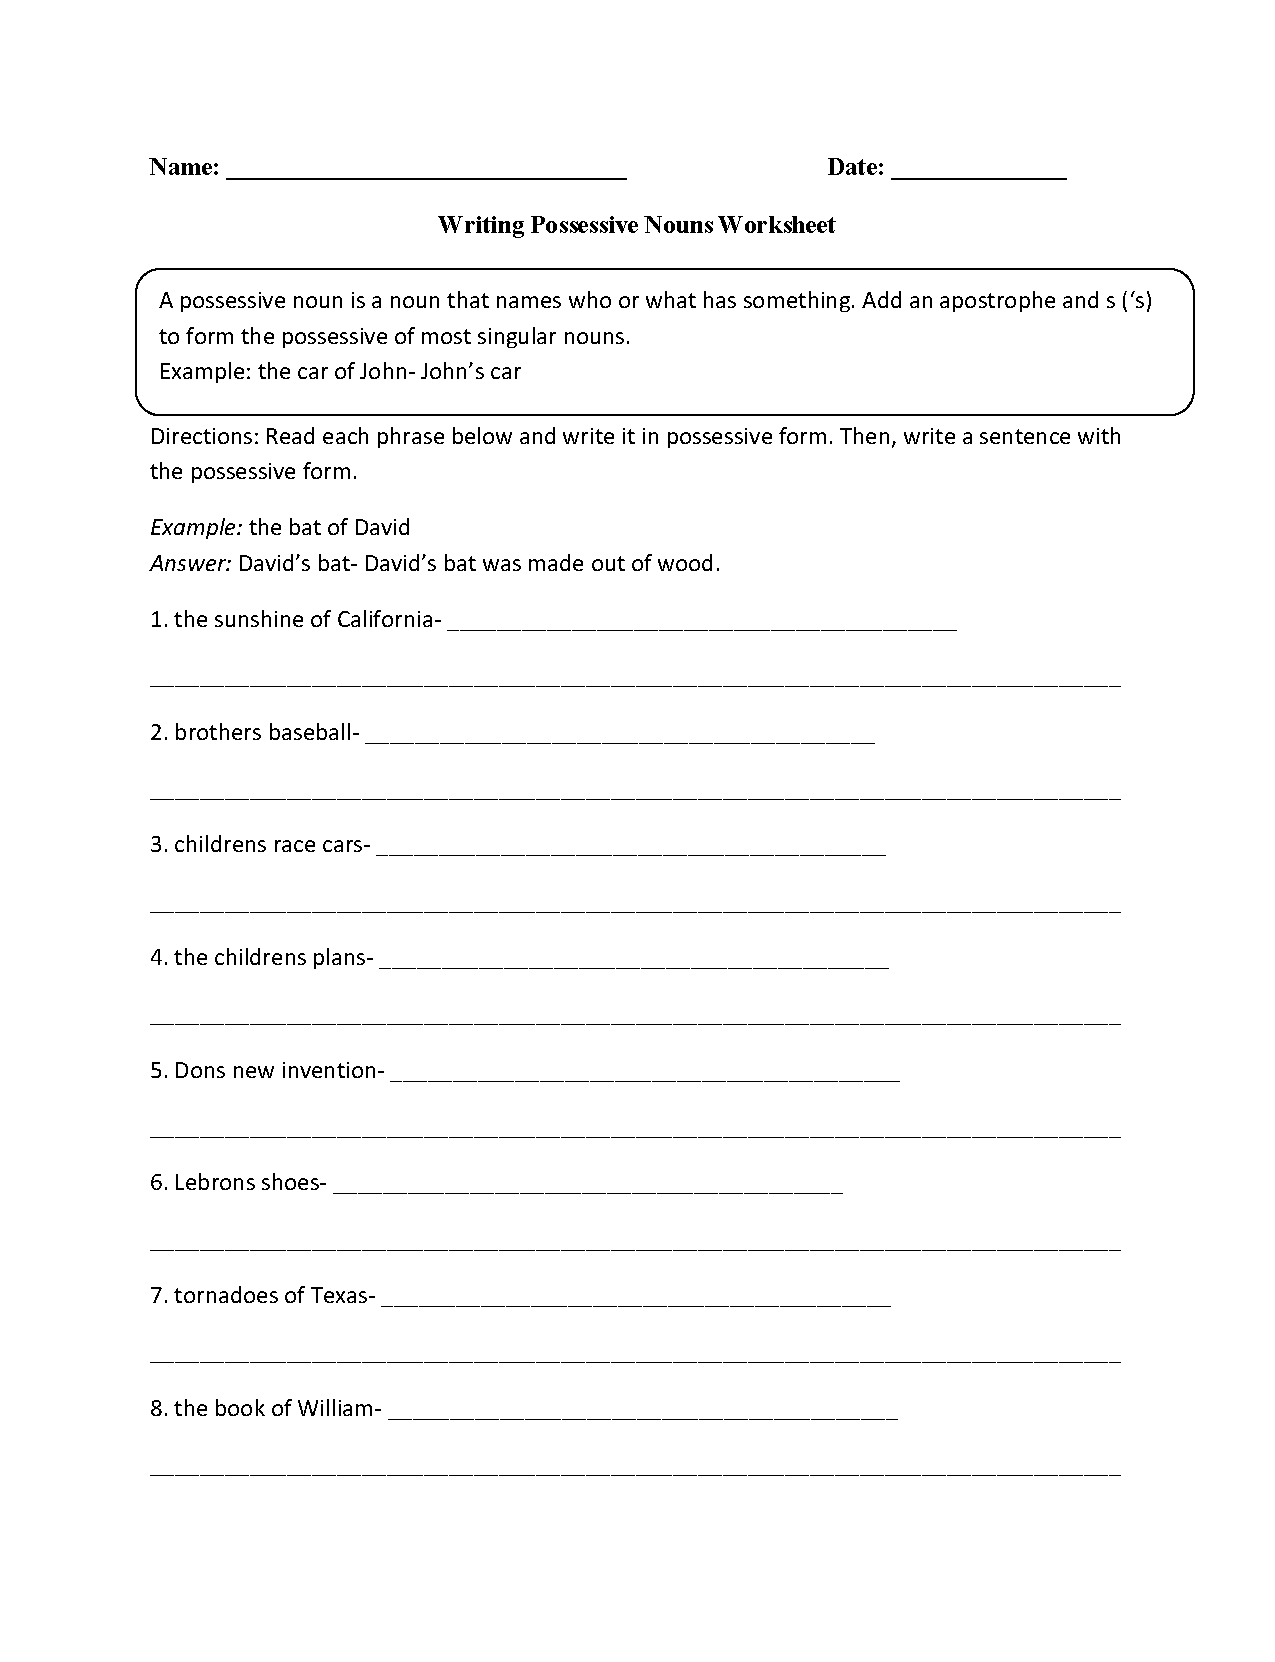 Worksheets Noun Worksheets For 1st Grade nouns worksheets possessive worksheet